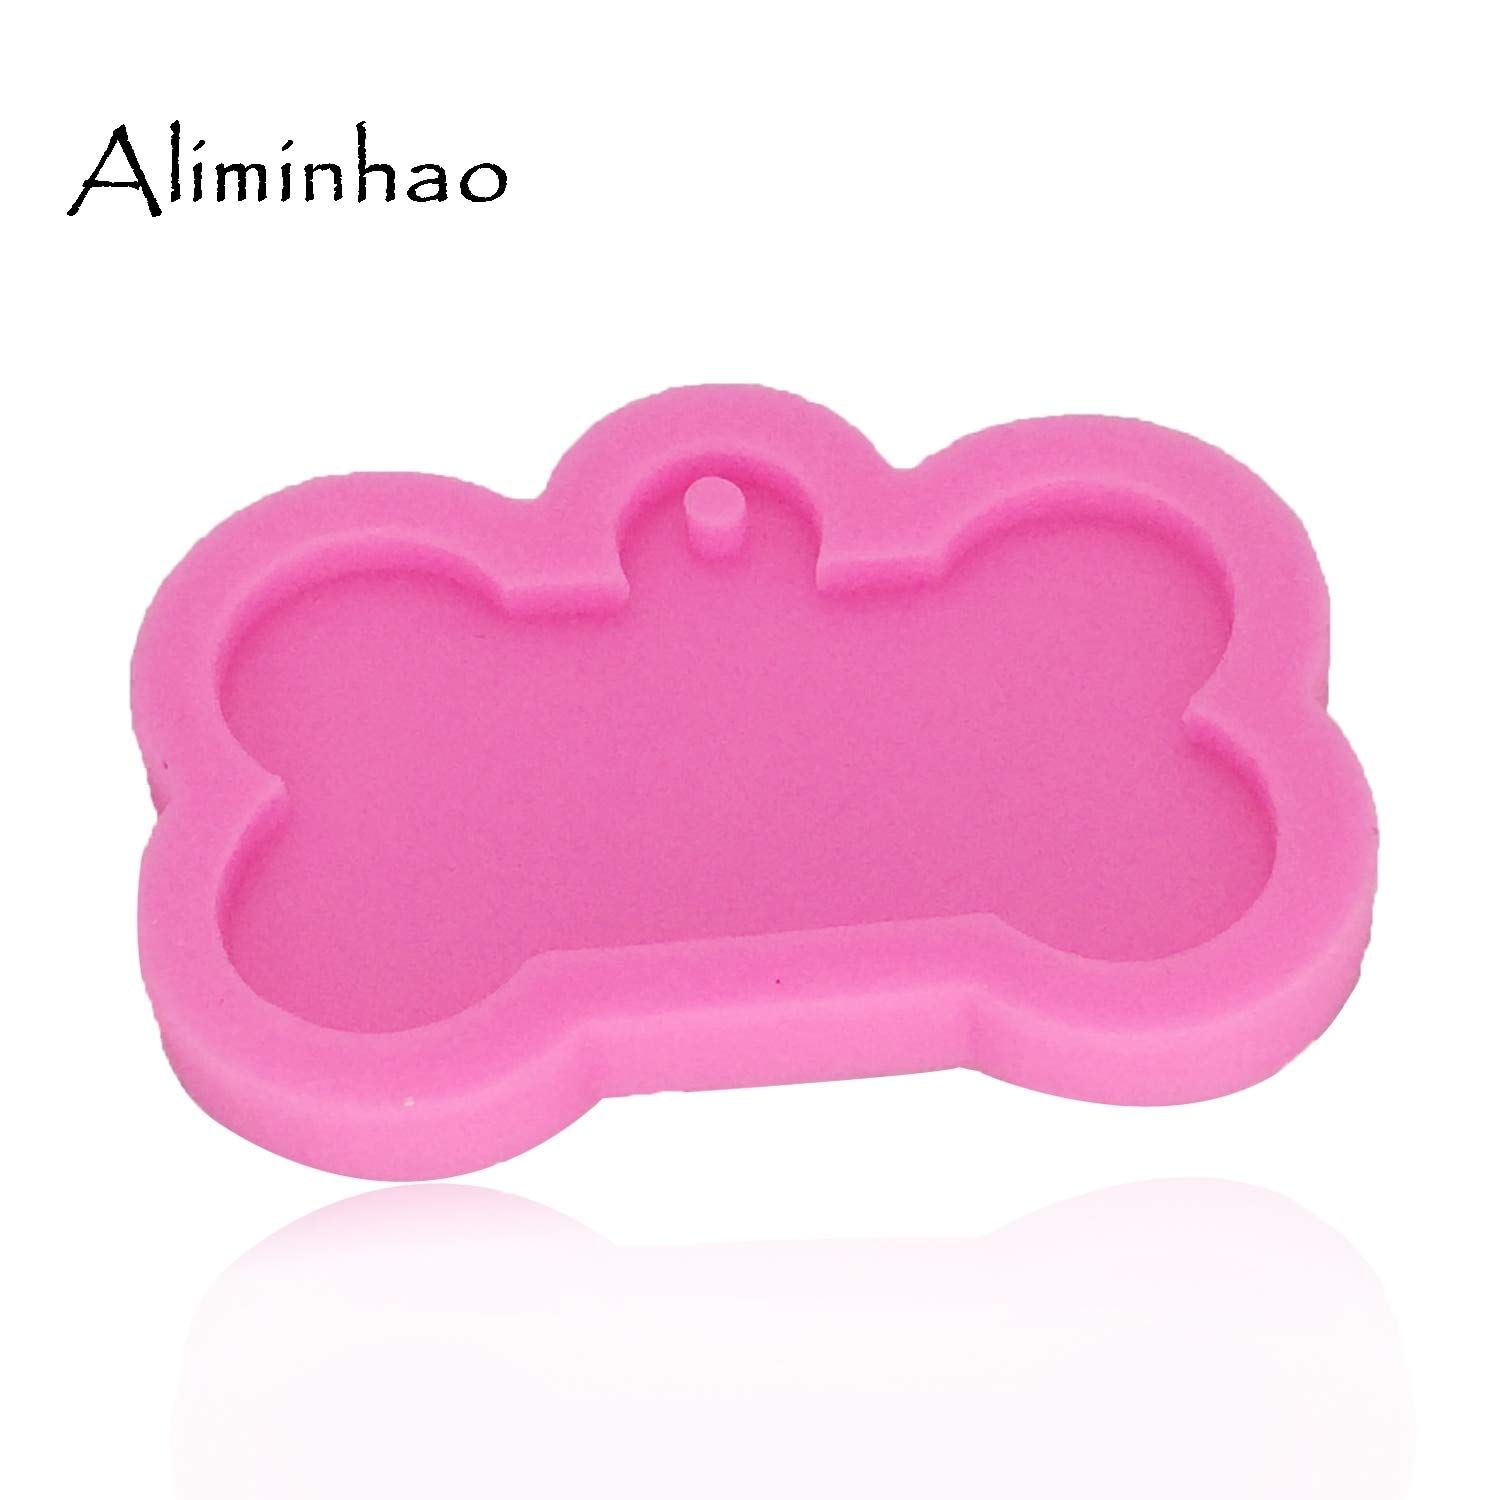 UTREND/_DY0061 Dog bone shape silicone mold for key chain Pendant moulds suitable for polymer clay DIY Jewelry Making epoxy Resin mold Color:Pink